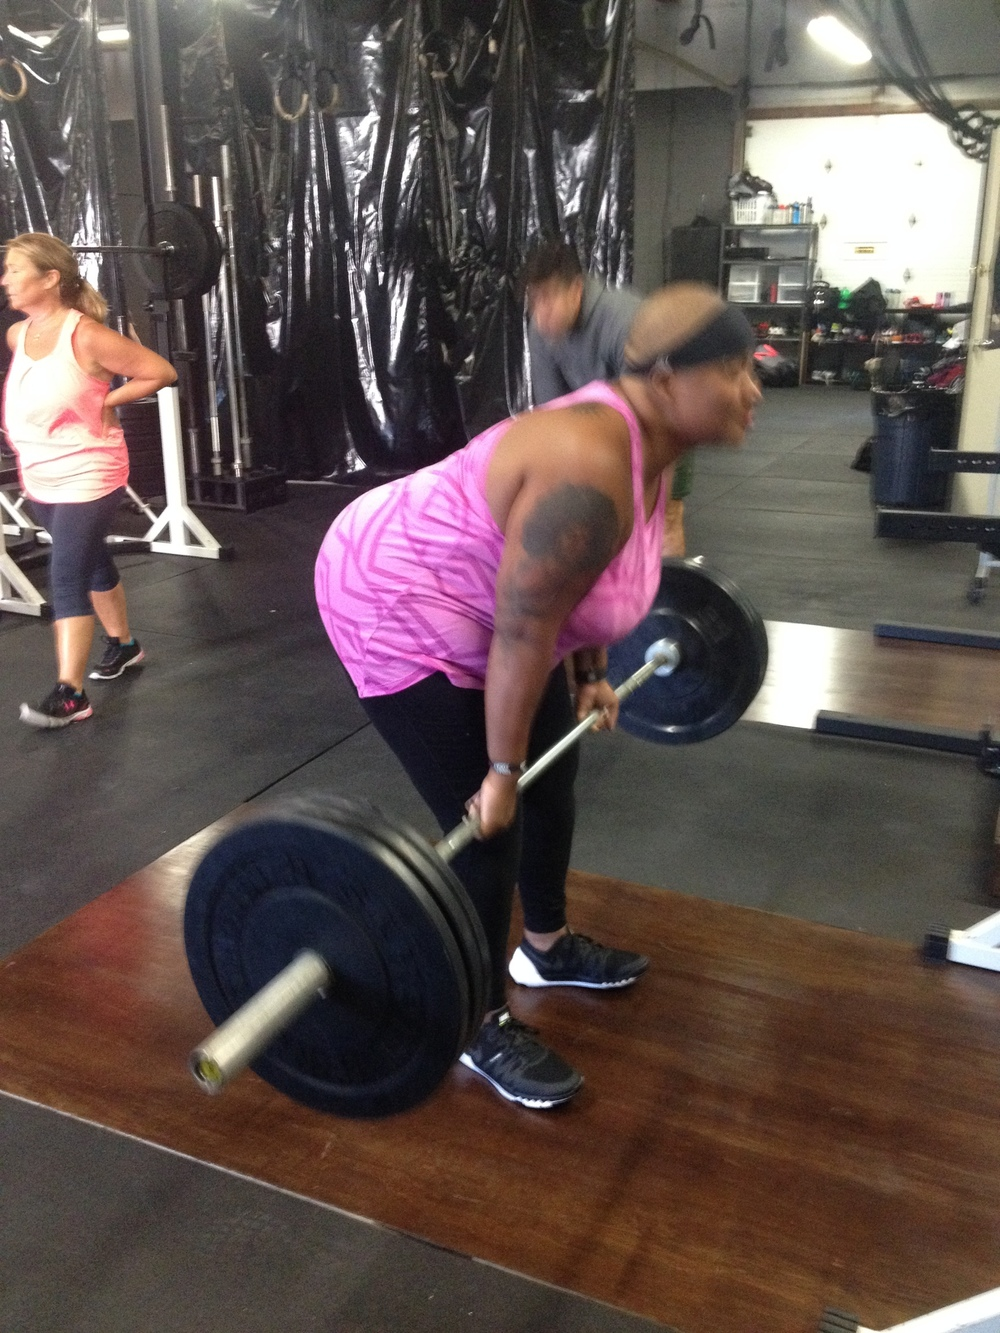 Started with an empty barbell week 1. A week after this pic Tricia hit a PR (105 for 8 reps)